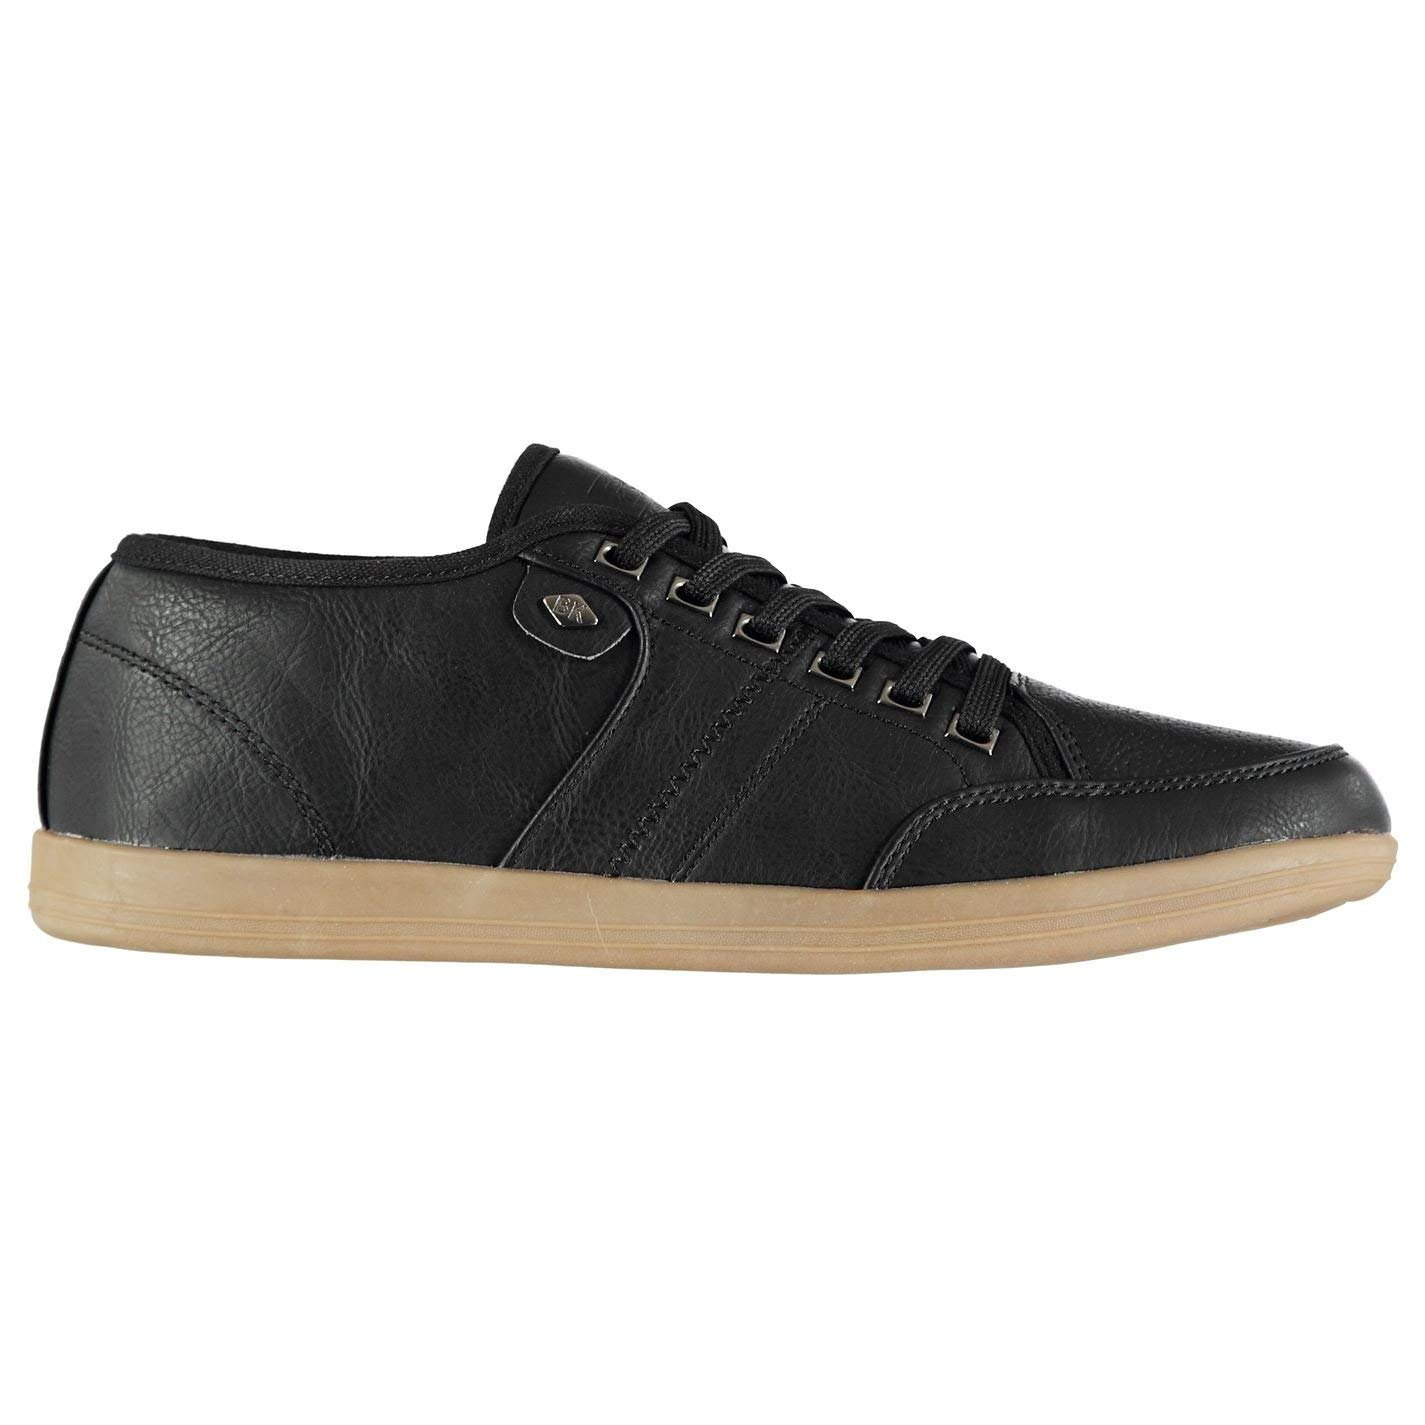 Get Quotations · British Knights Mens Surto Low Trainers Lace up Textured c202df51a459b